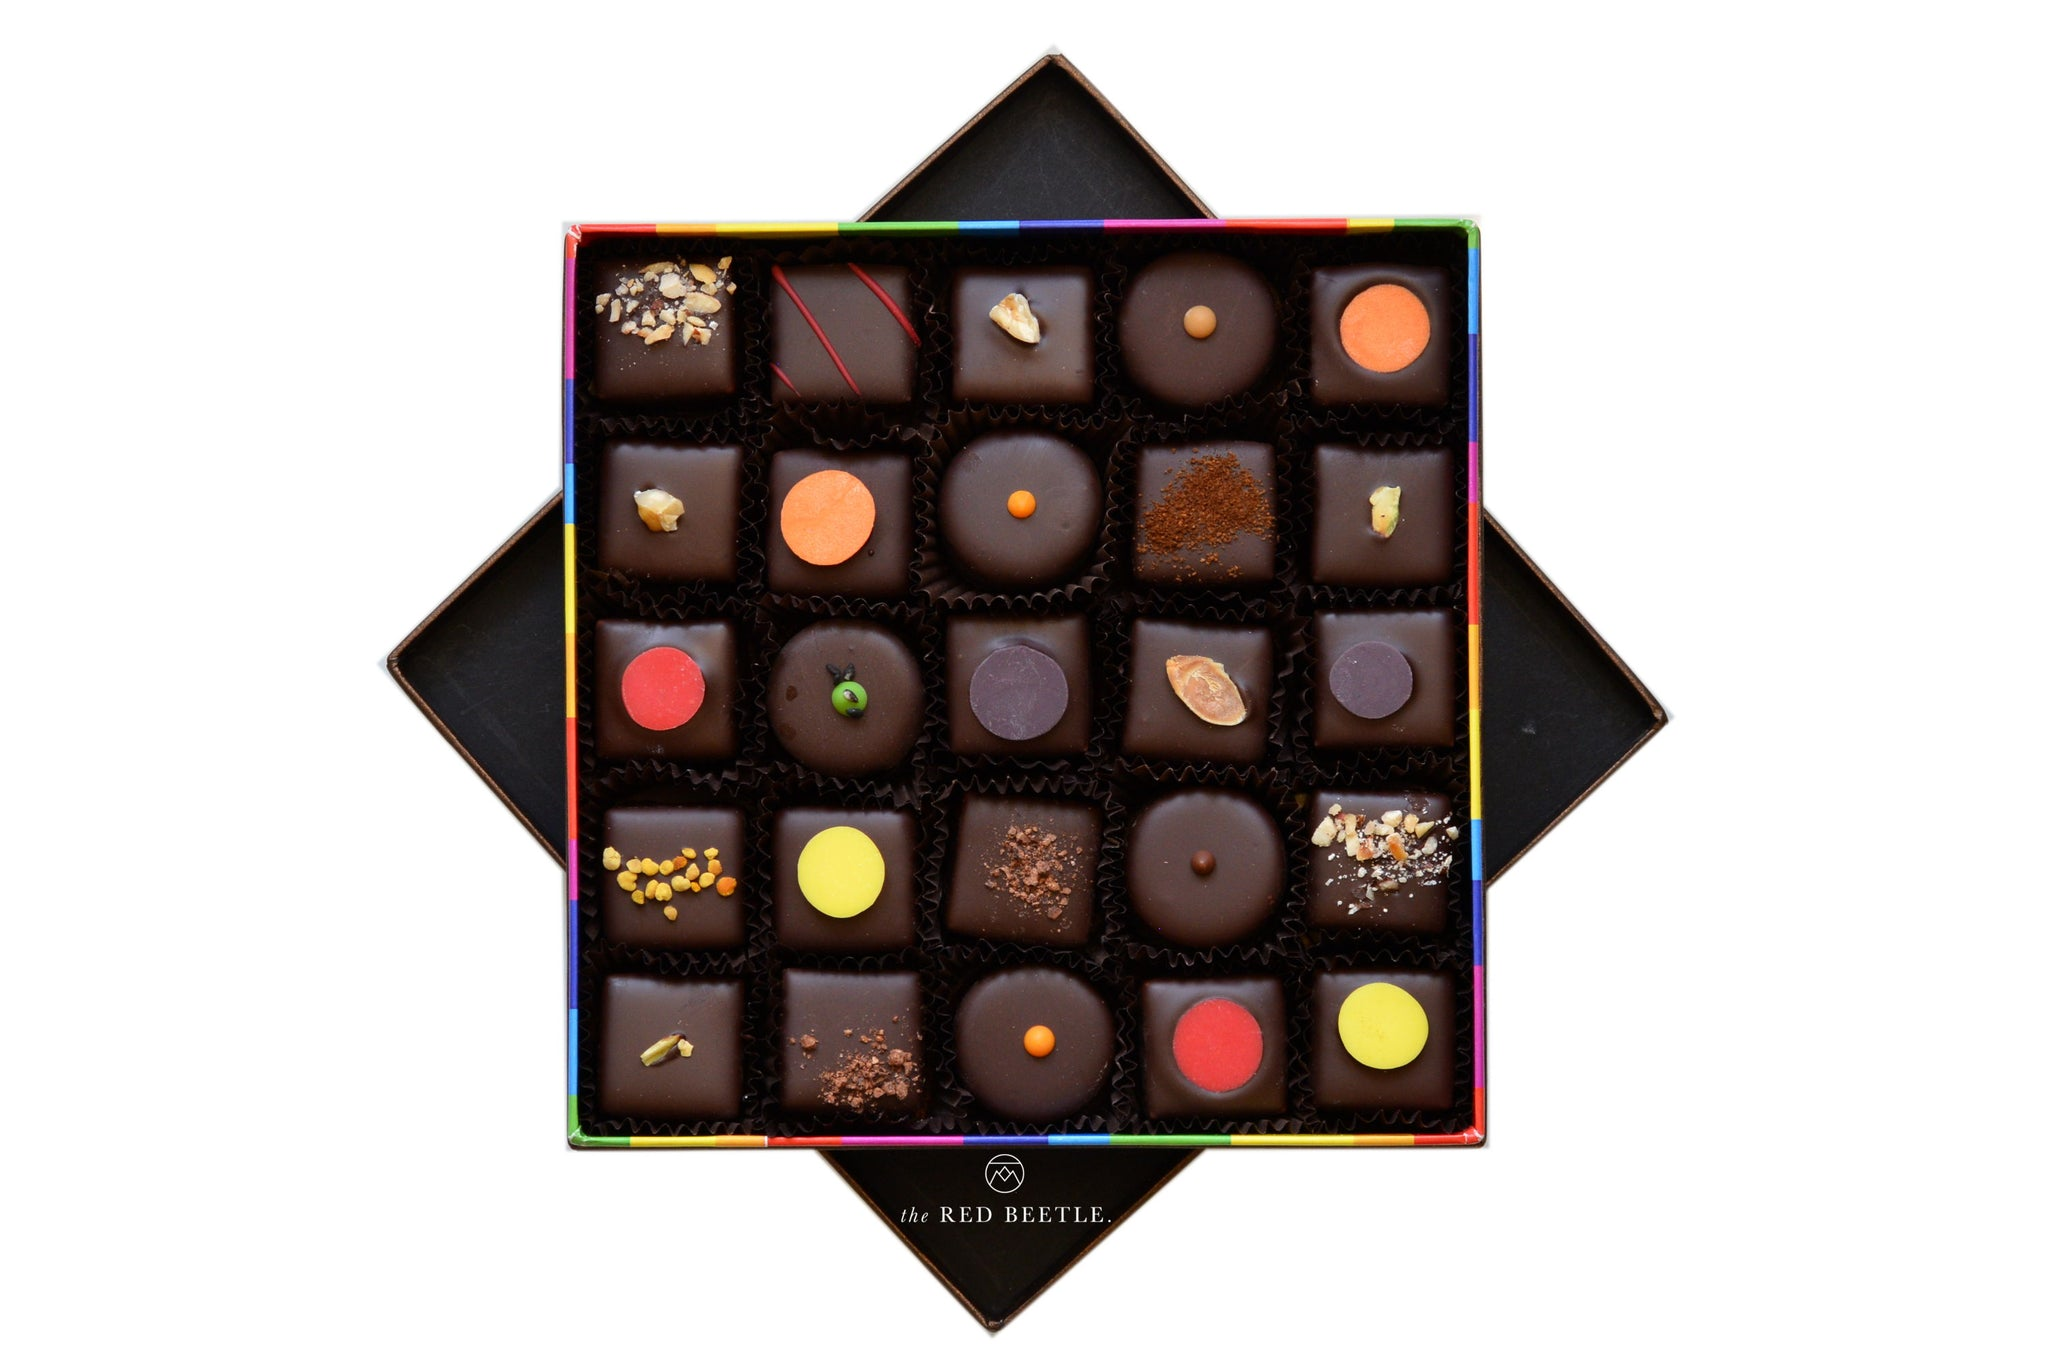 Enrico Rizzi Box of 25 Chocolate Pralines Handmade in Milan